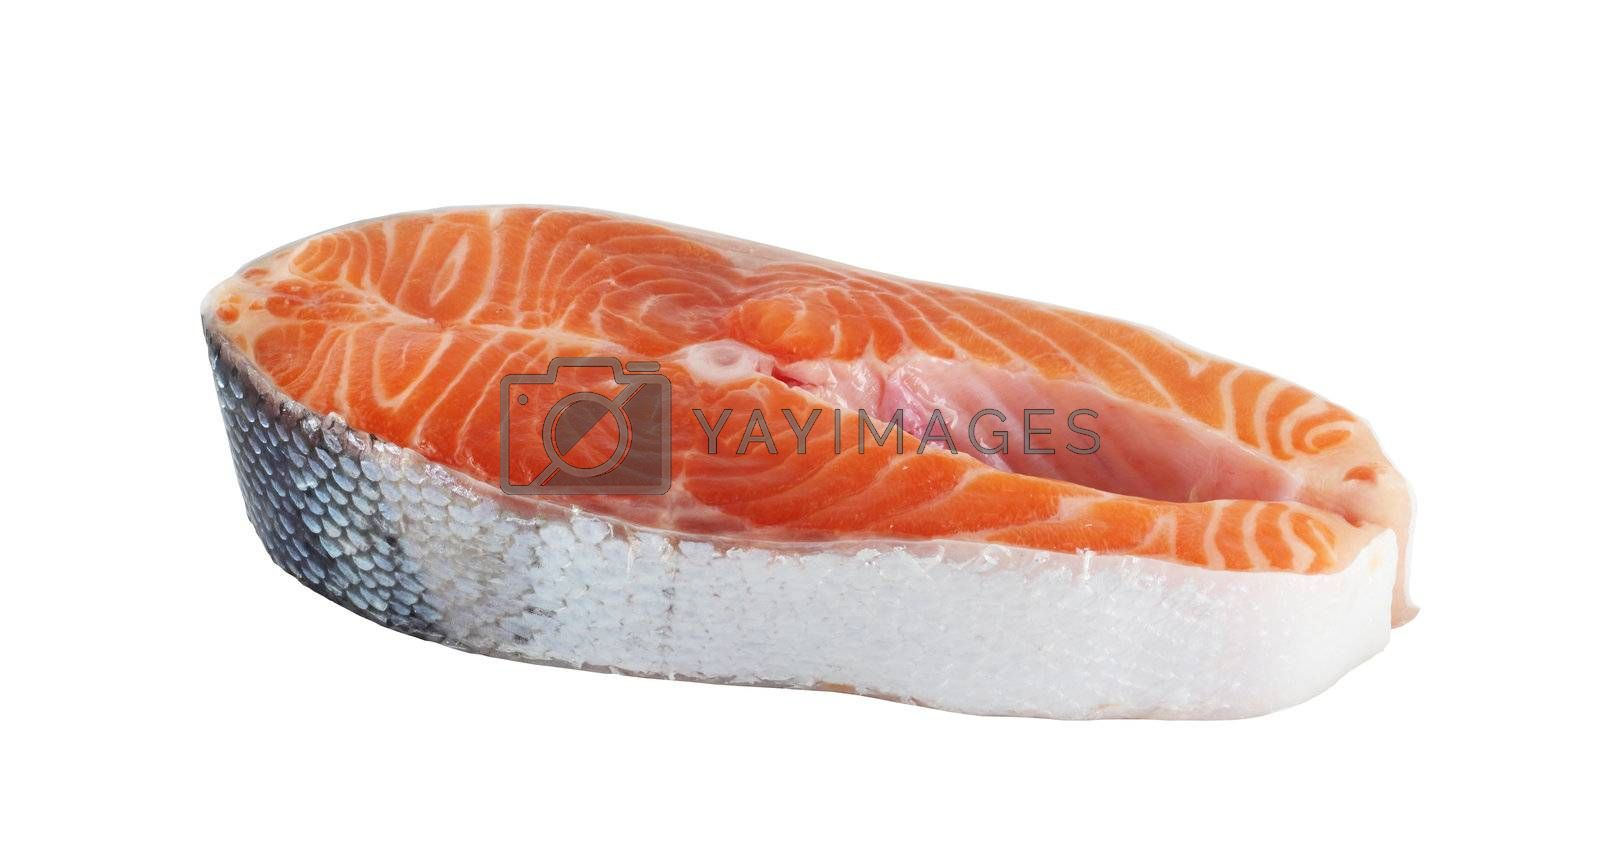 Raw trout steak isolated on white background